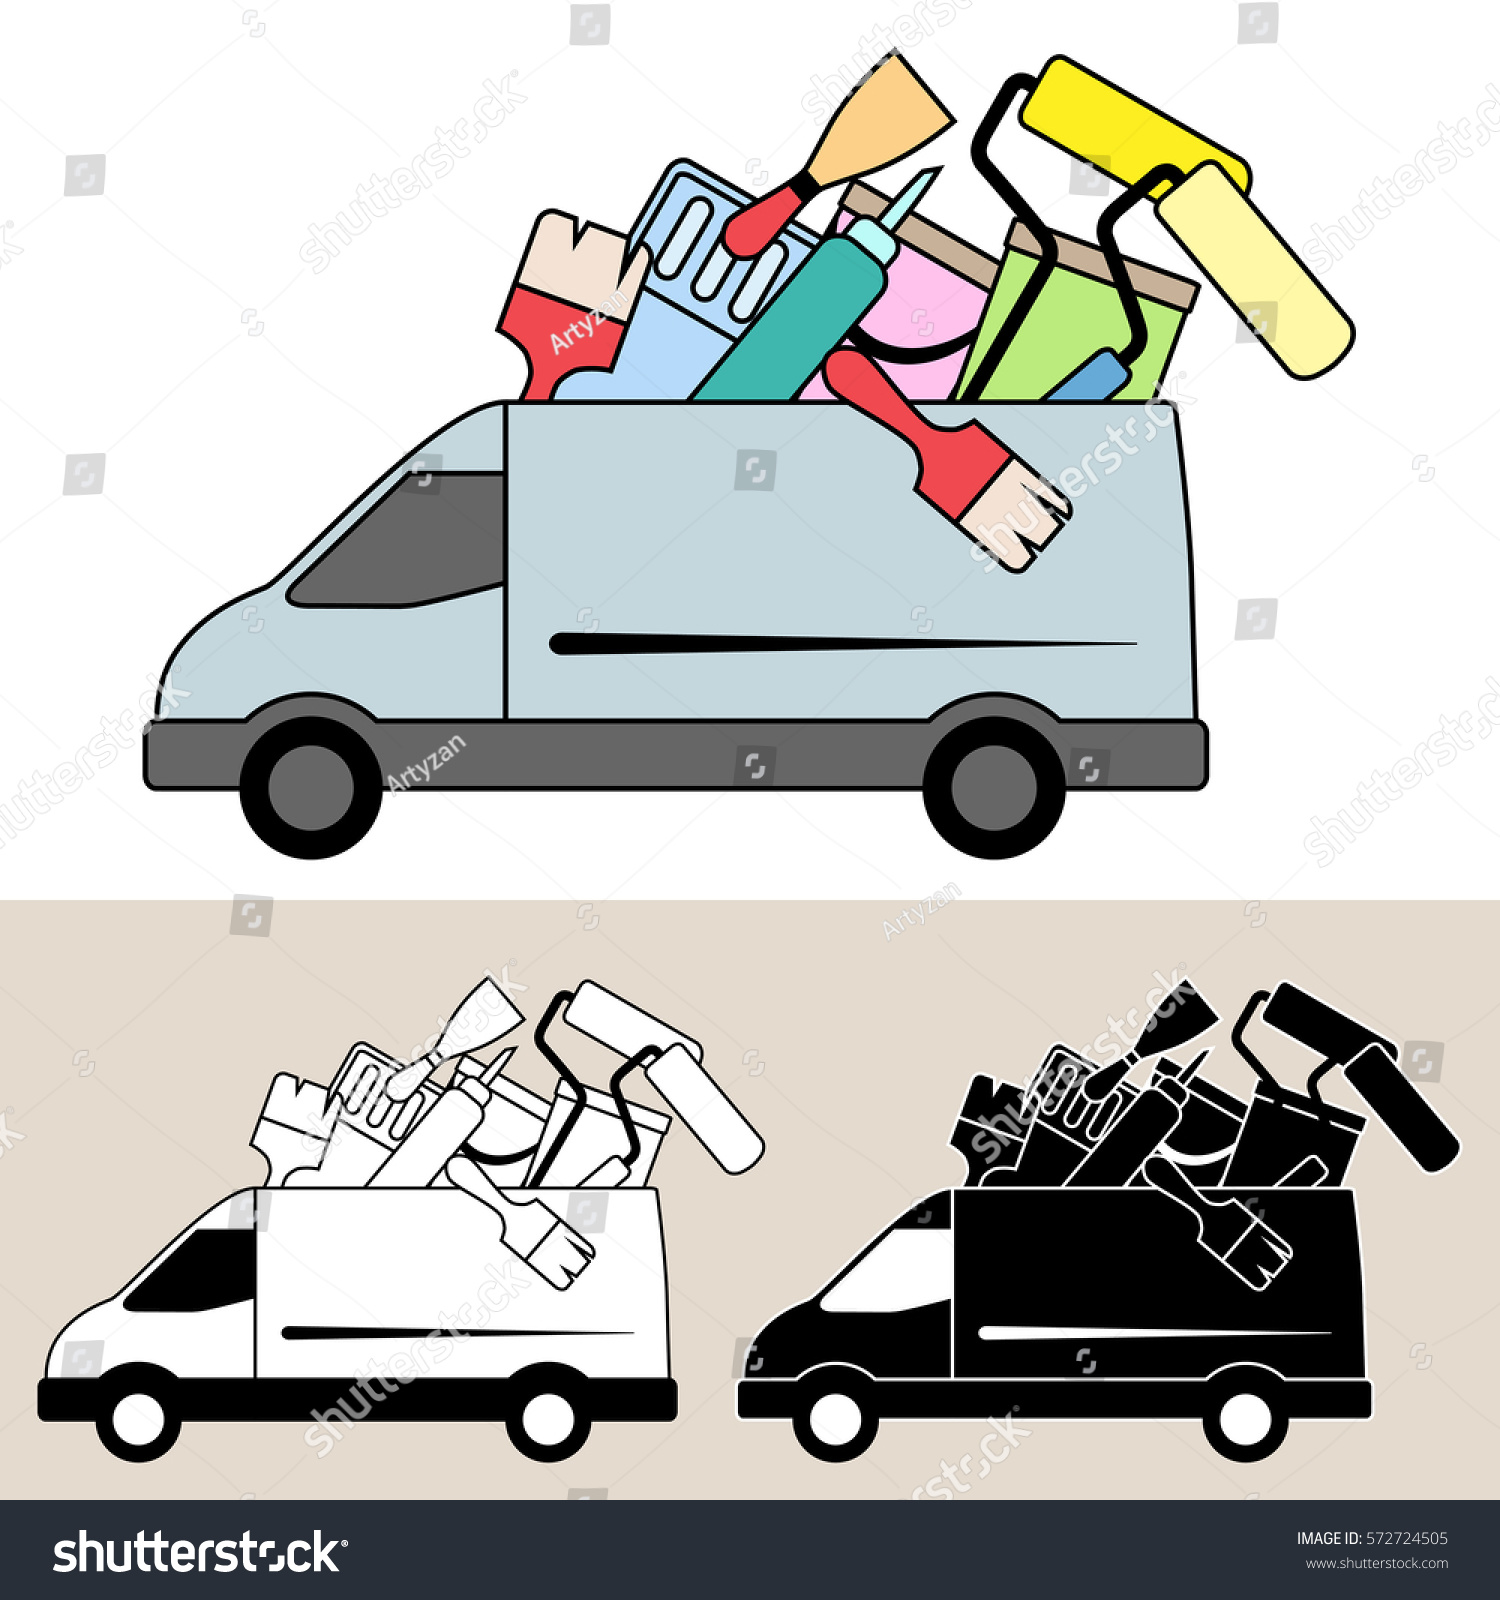 https://image.shutterstock.com/z/stock-vector-van-delivering-mobile-service-with-painting-and-decorating-tools-and-equipment-paint-brushes-572724505.jpg